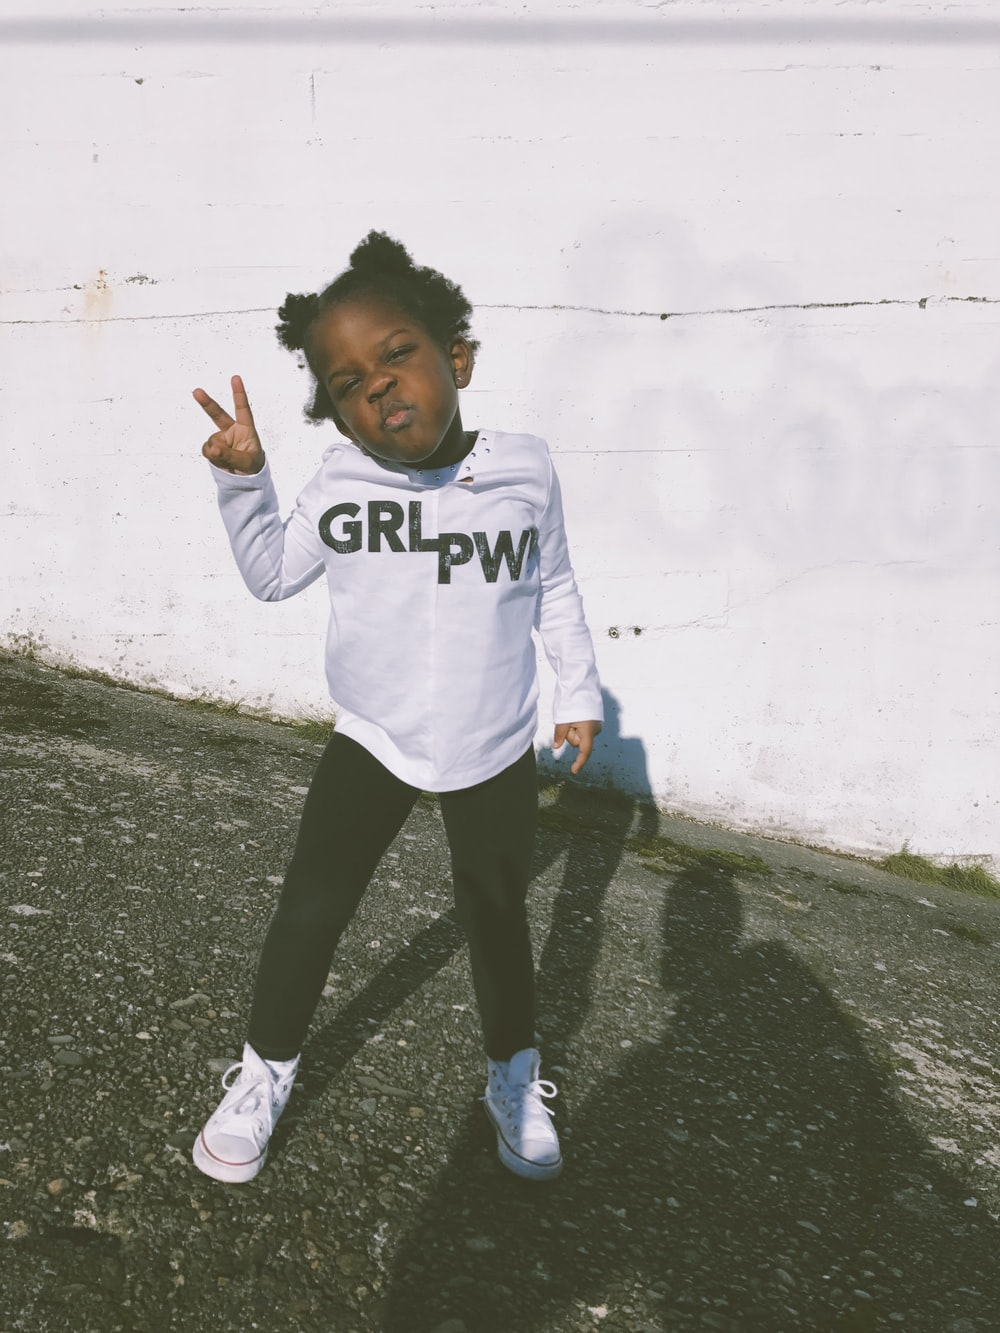 girl wearing white and black sweater doing peace hand sign